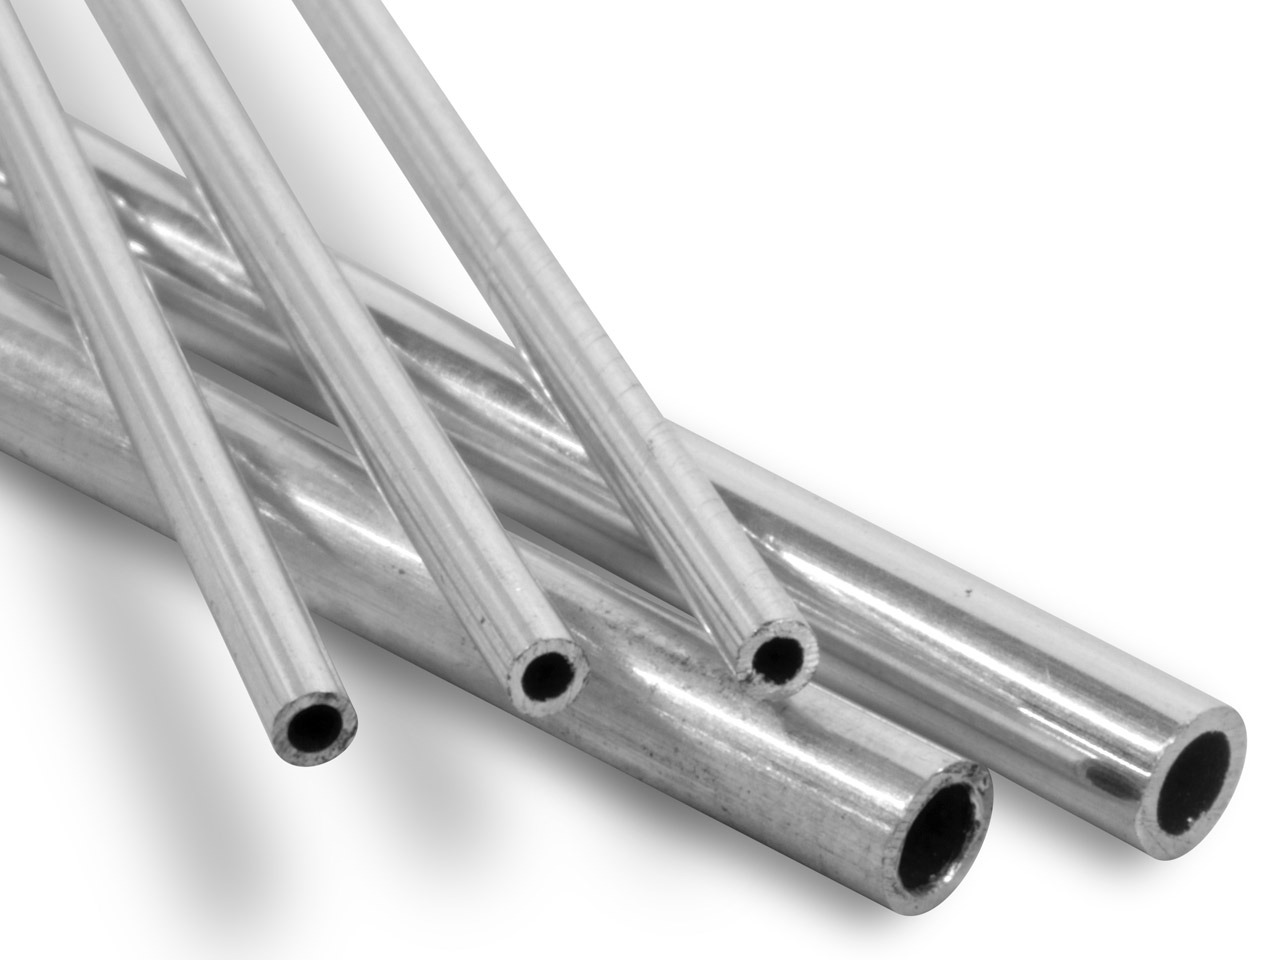 Sterling Silver Tube, Ref 10,       Outside Diameter 2.0mm,             Inside Diameter 1.30mm, 0.35mm Wall Thickness